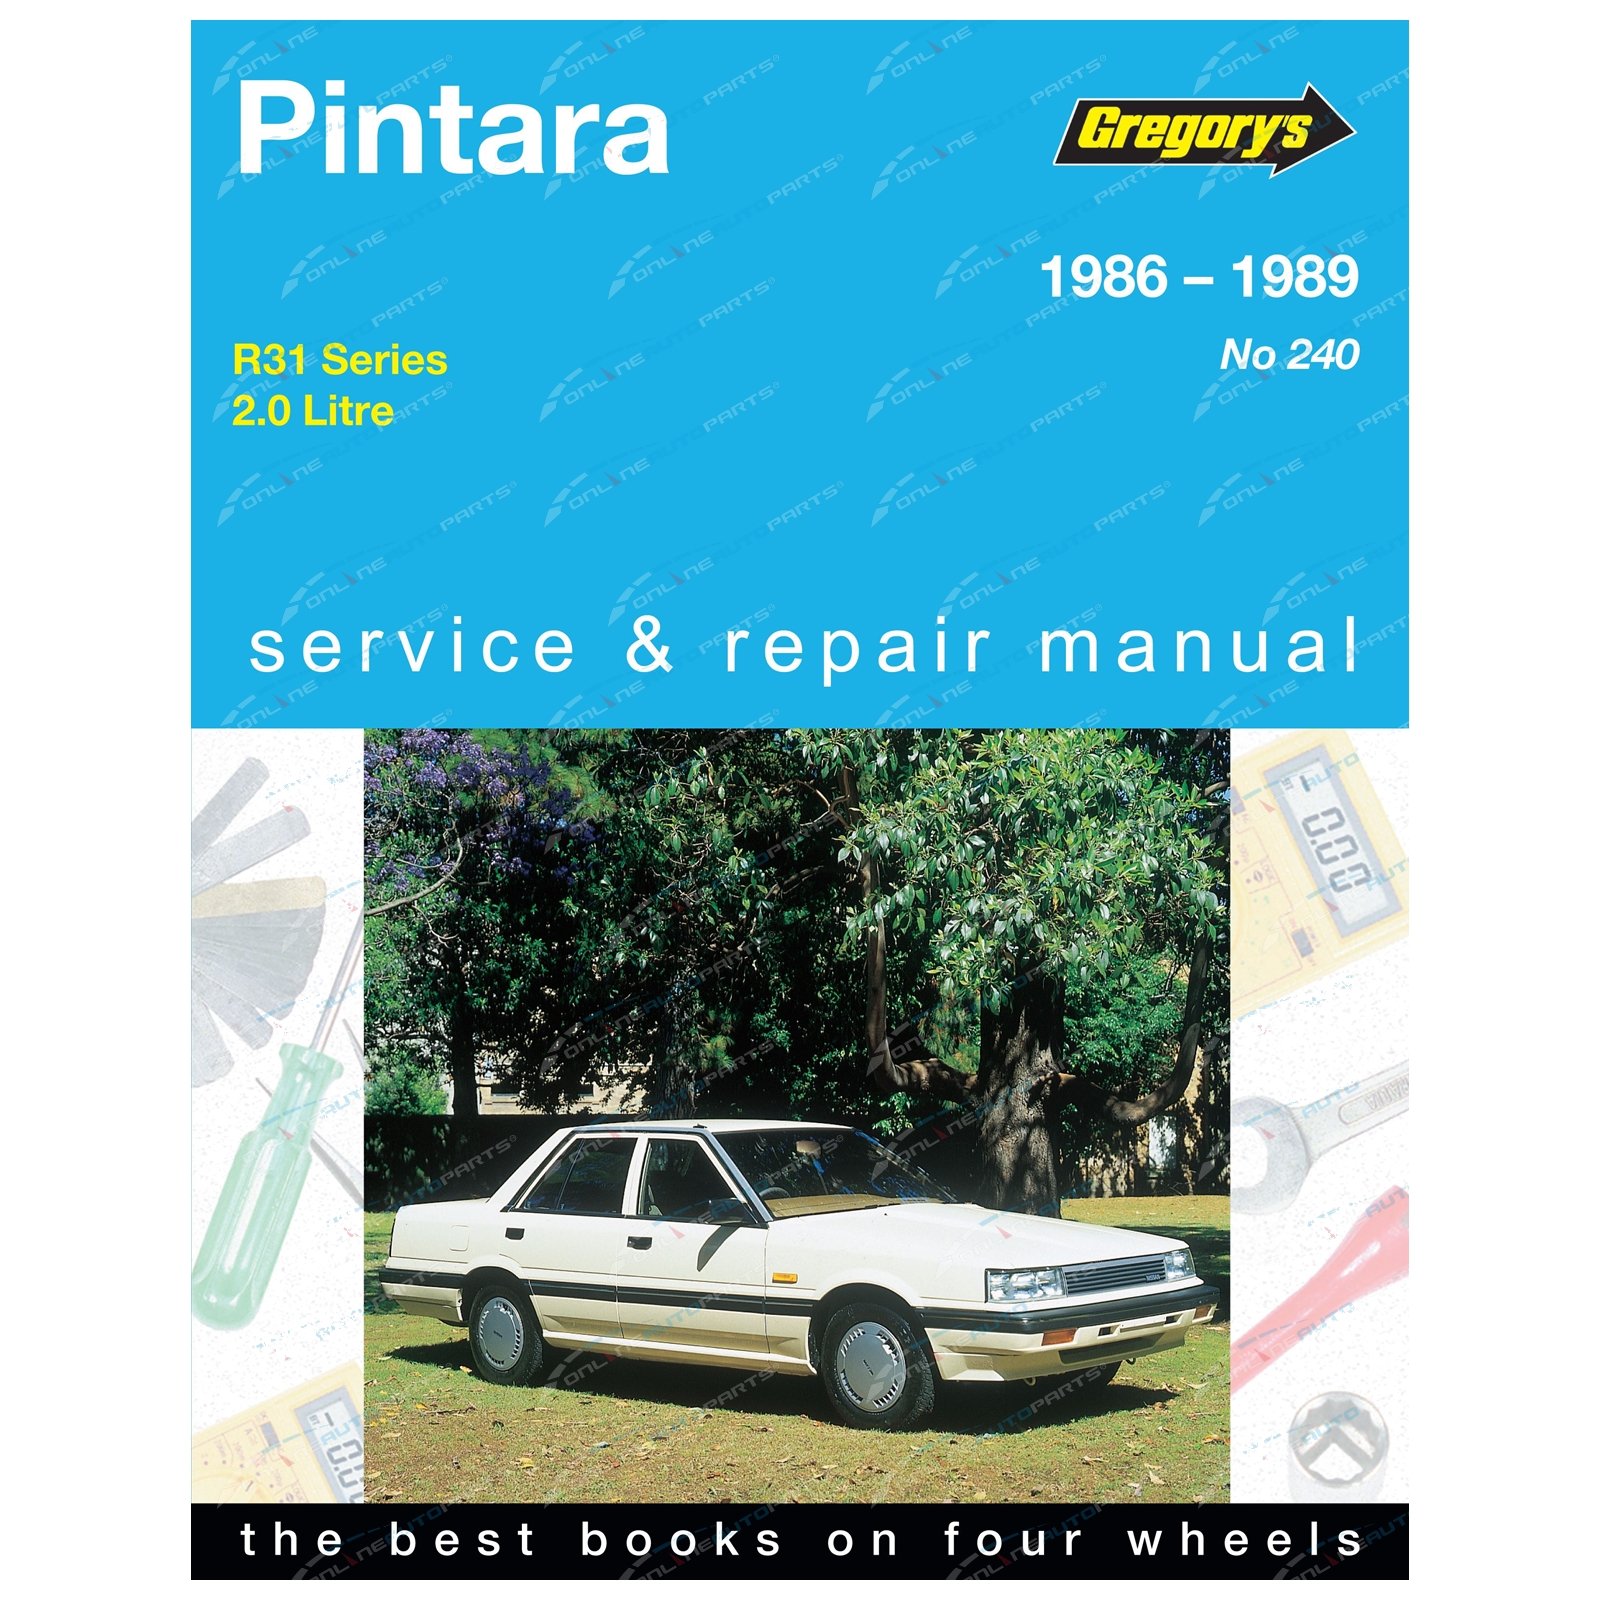 04240 085566634X 9780855666347 Gregorys Repair Manual Book